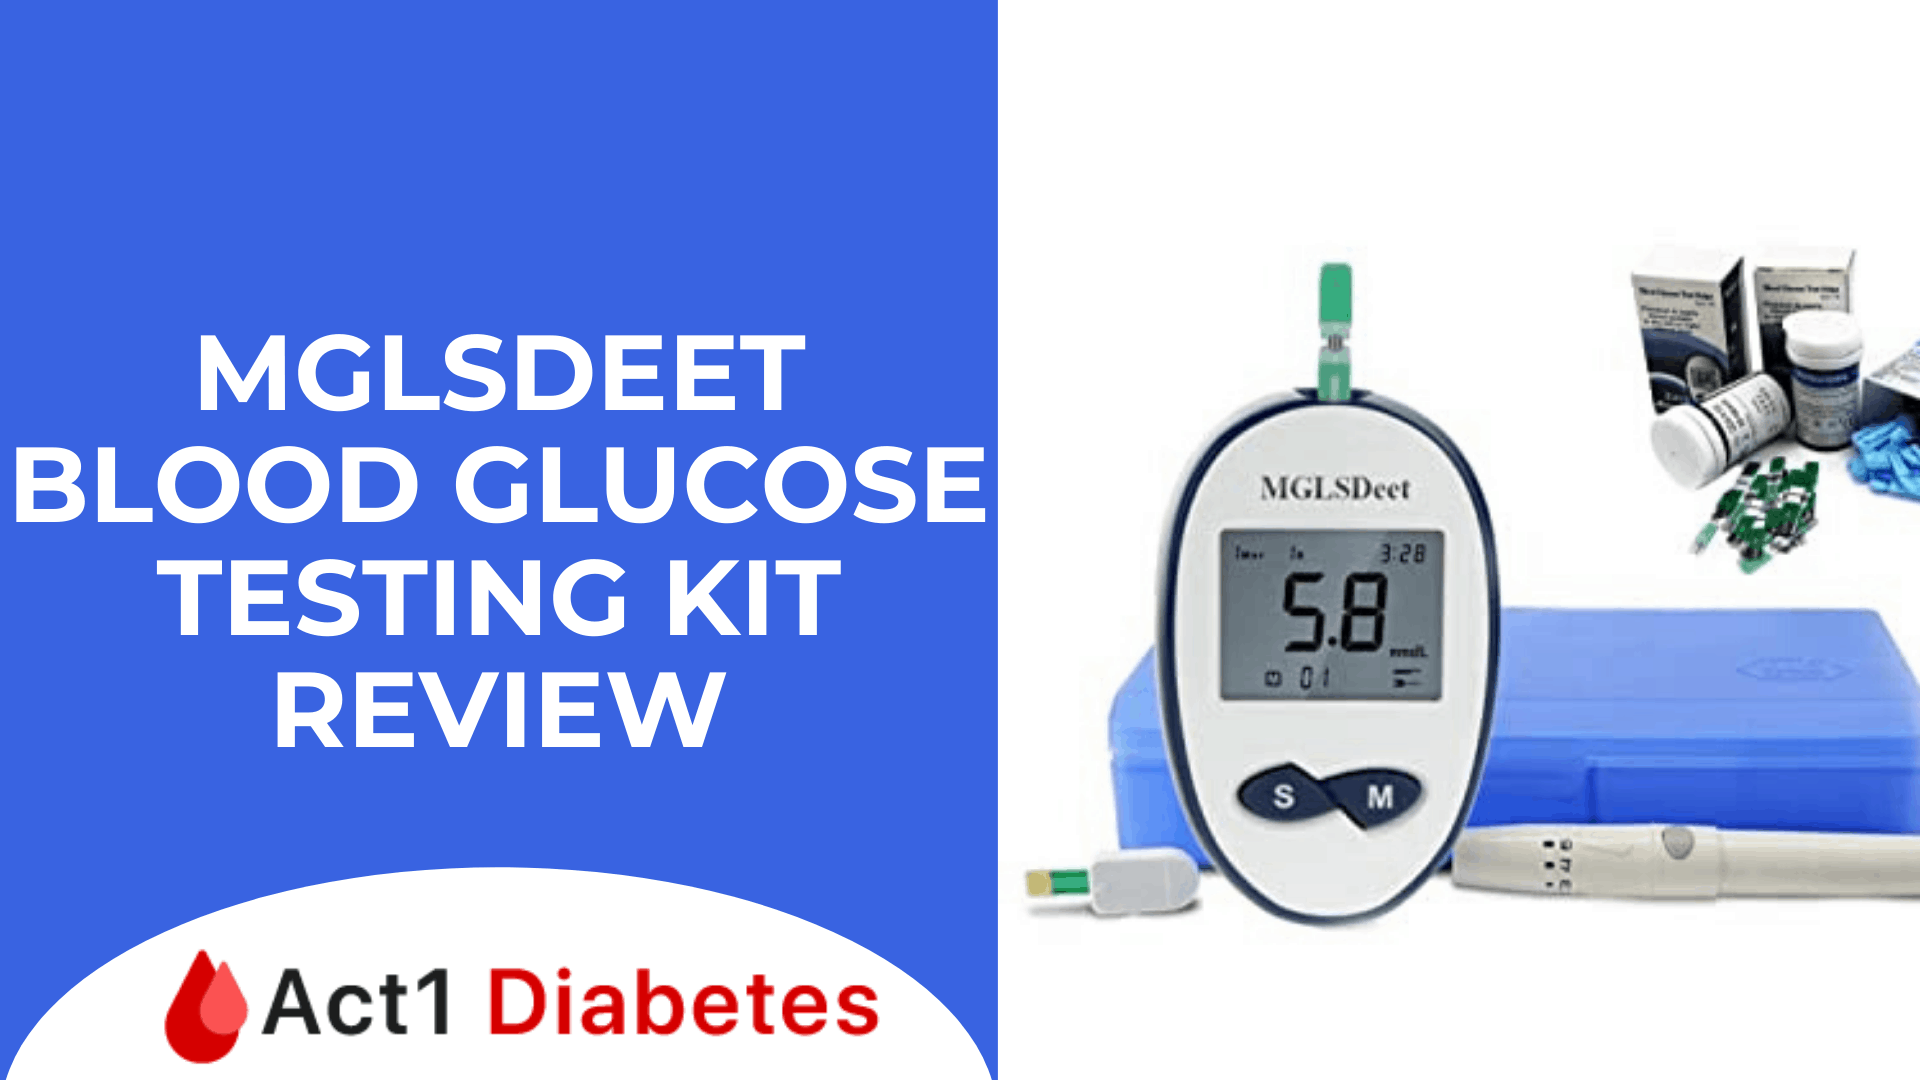 MGLSDeet Blood Glucose testing Kit Review